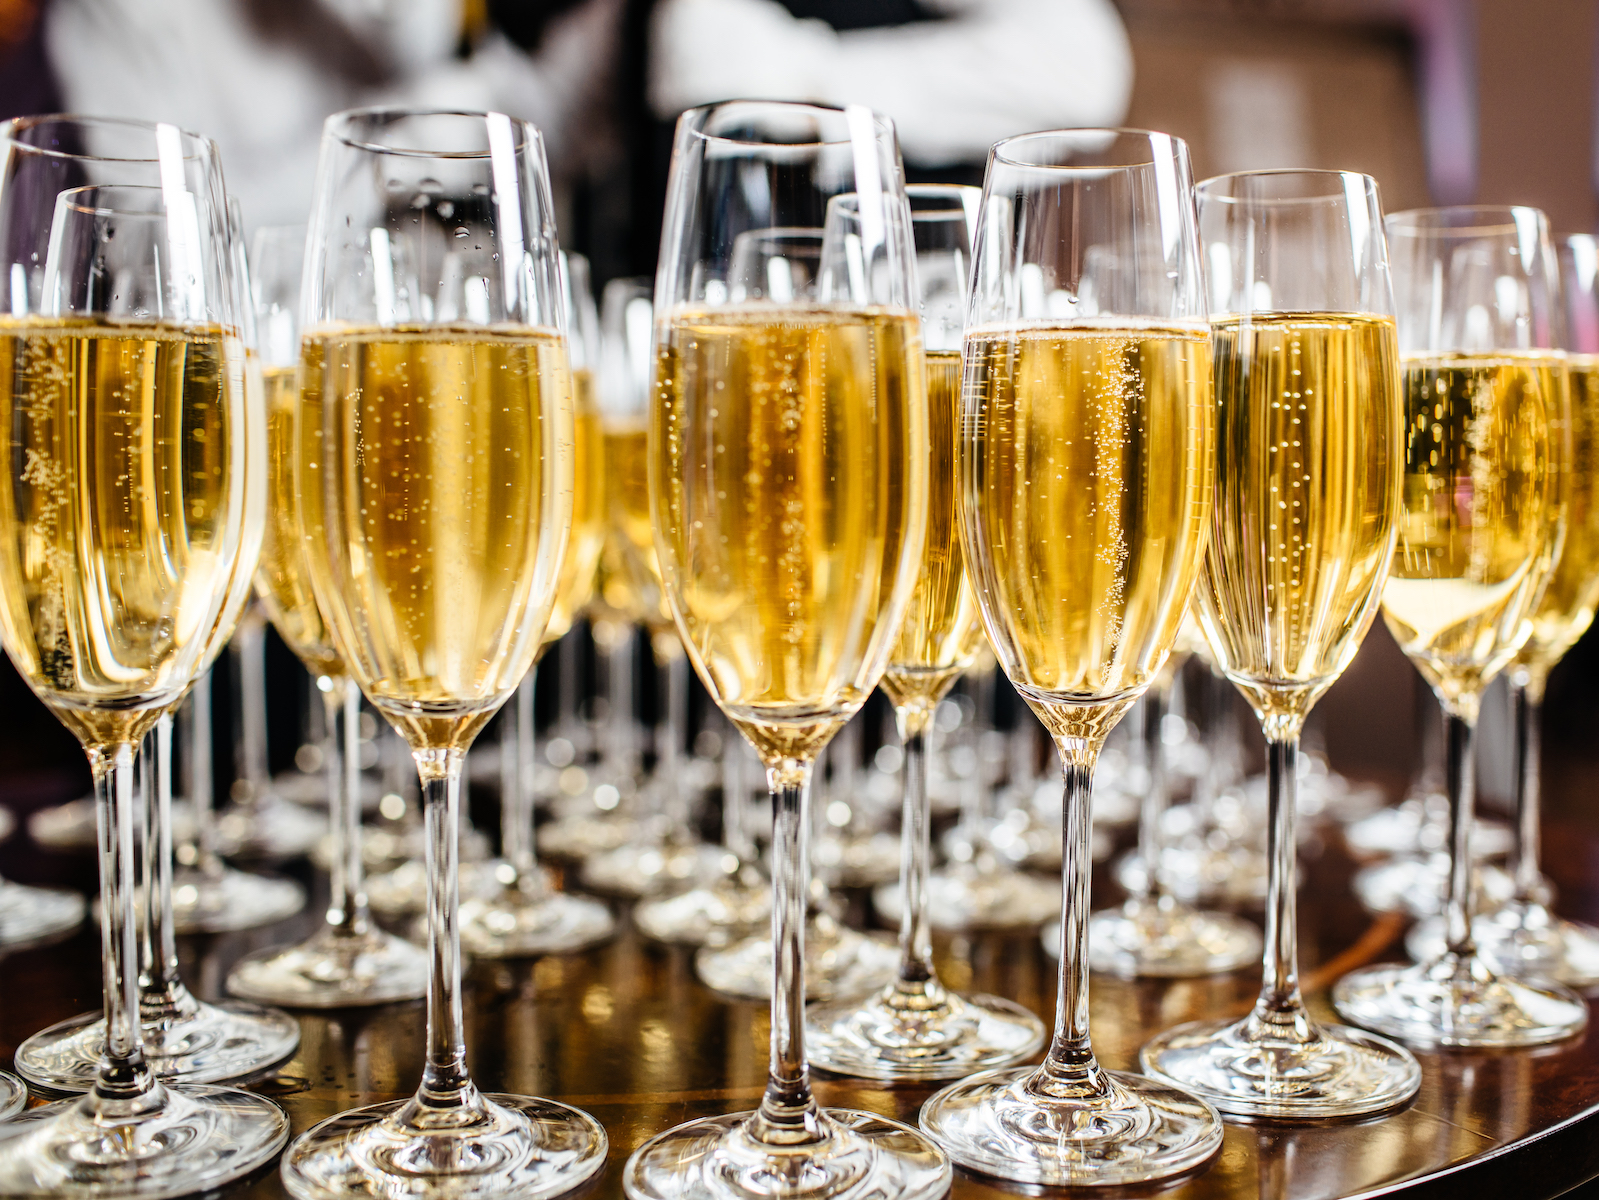 Italy's Prosecco Production Could Reach One Billion Bottles in a Single Year